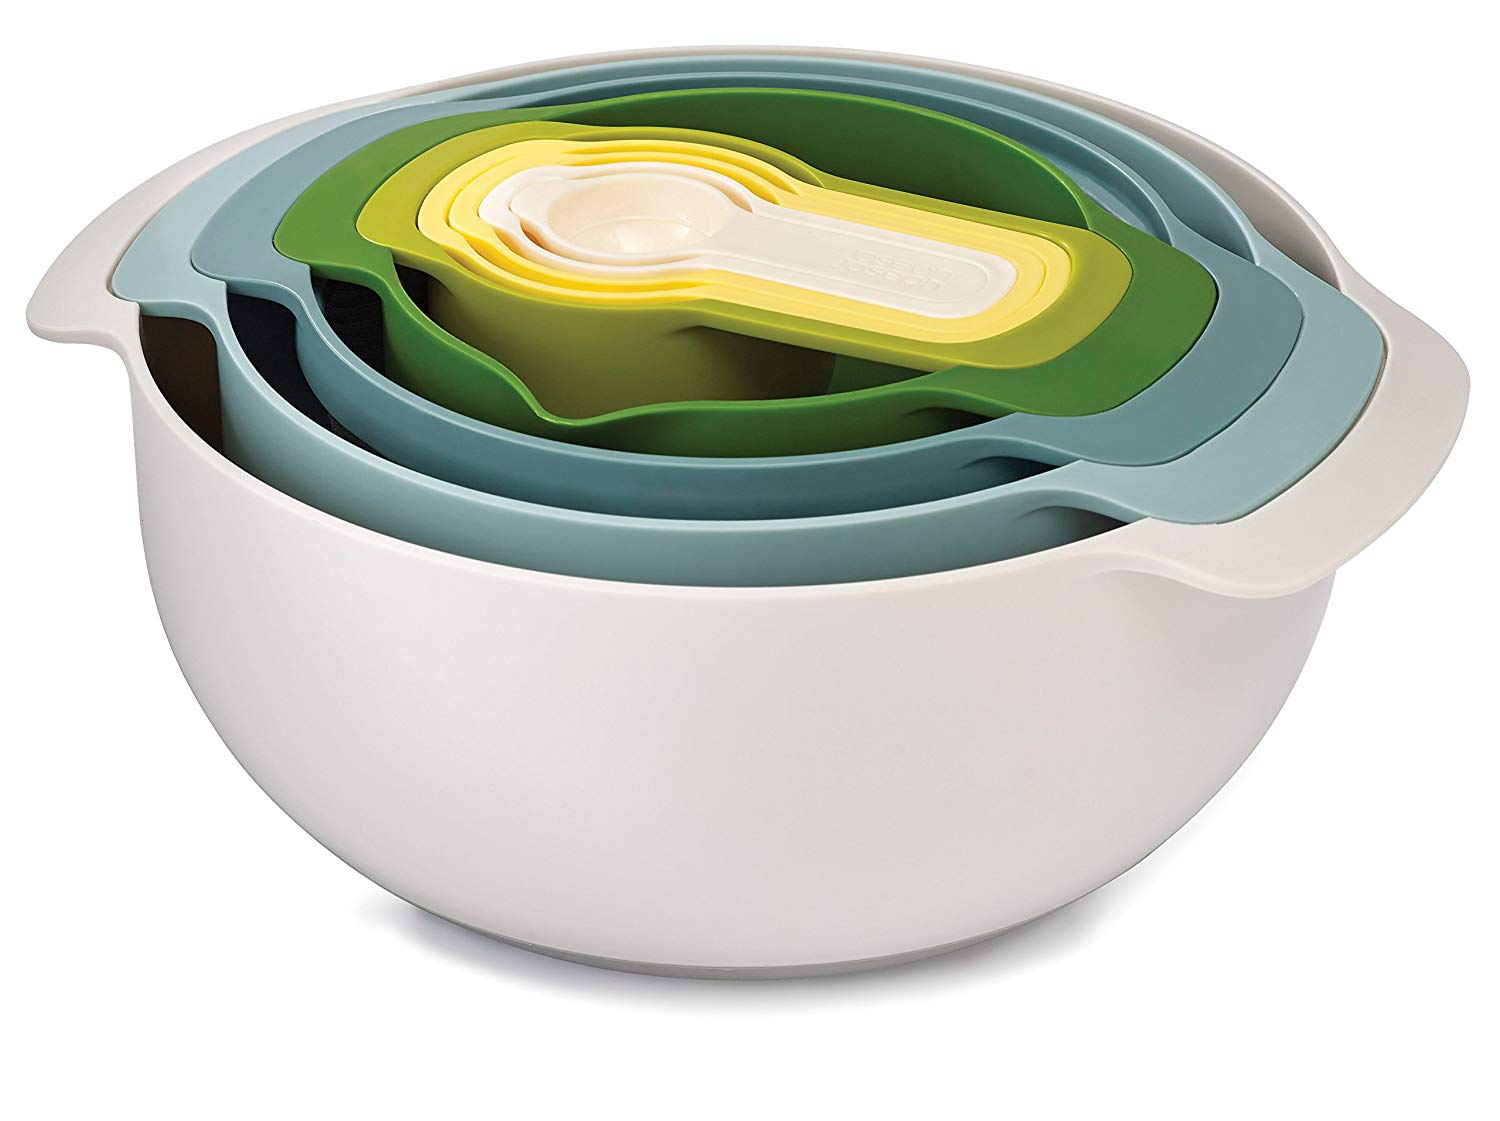 Joseph Joseph Nest 9 Plus Nesting Set, Opal – Multi-Colour, 9 Piece £24.39